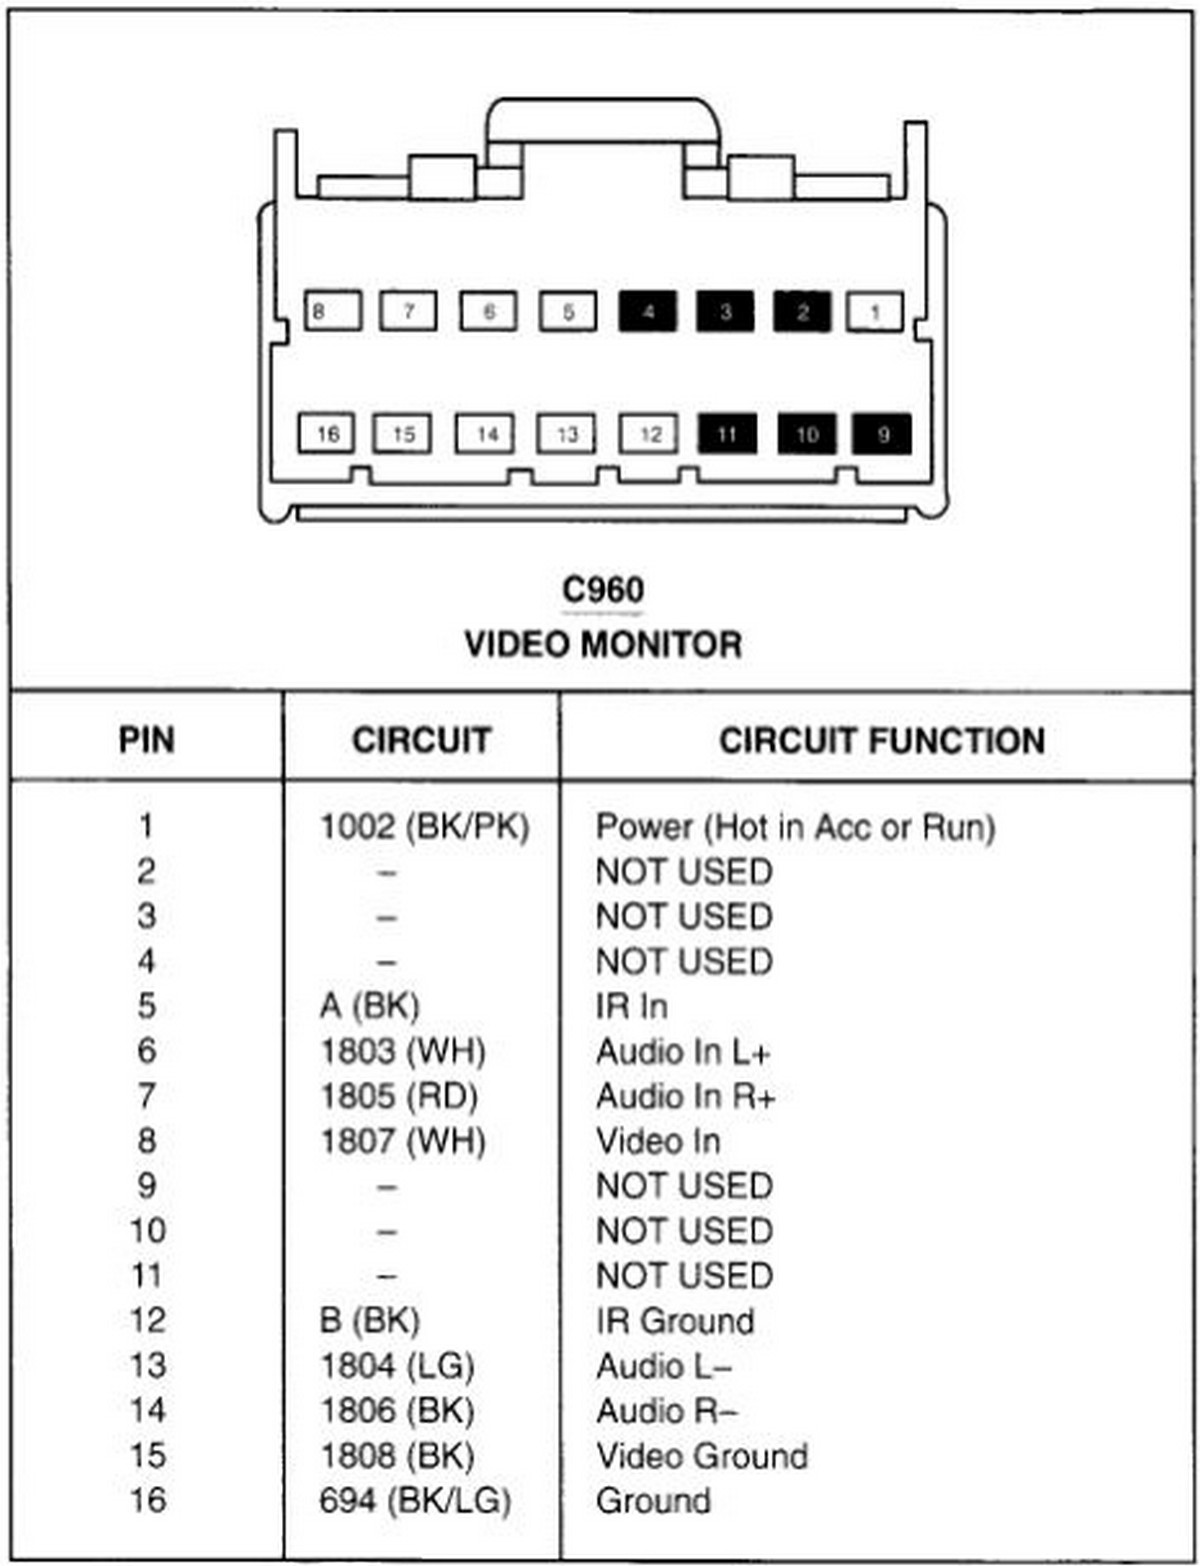 Ford Car Radio Stereo Audio Wiring Diagram Autoradio Connector Wire What Is The For 2006 Chevy Trailblazer Autos Installation Schematic Schema Esquema De Conexiones Stecker Konektor Connecteur Cable